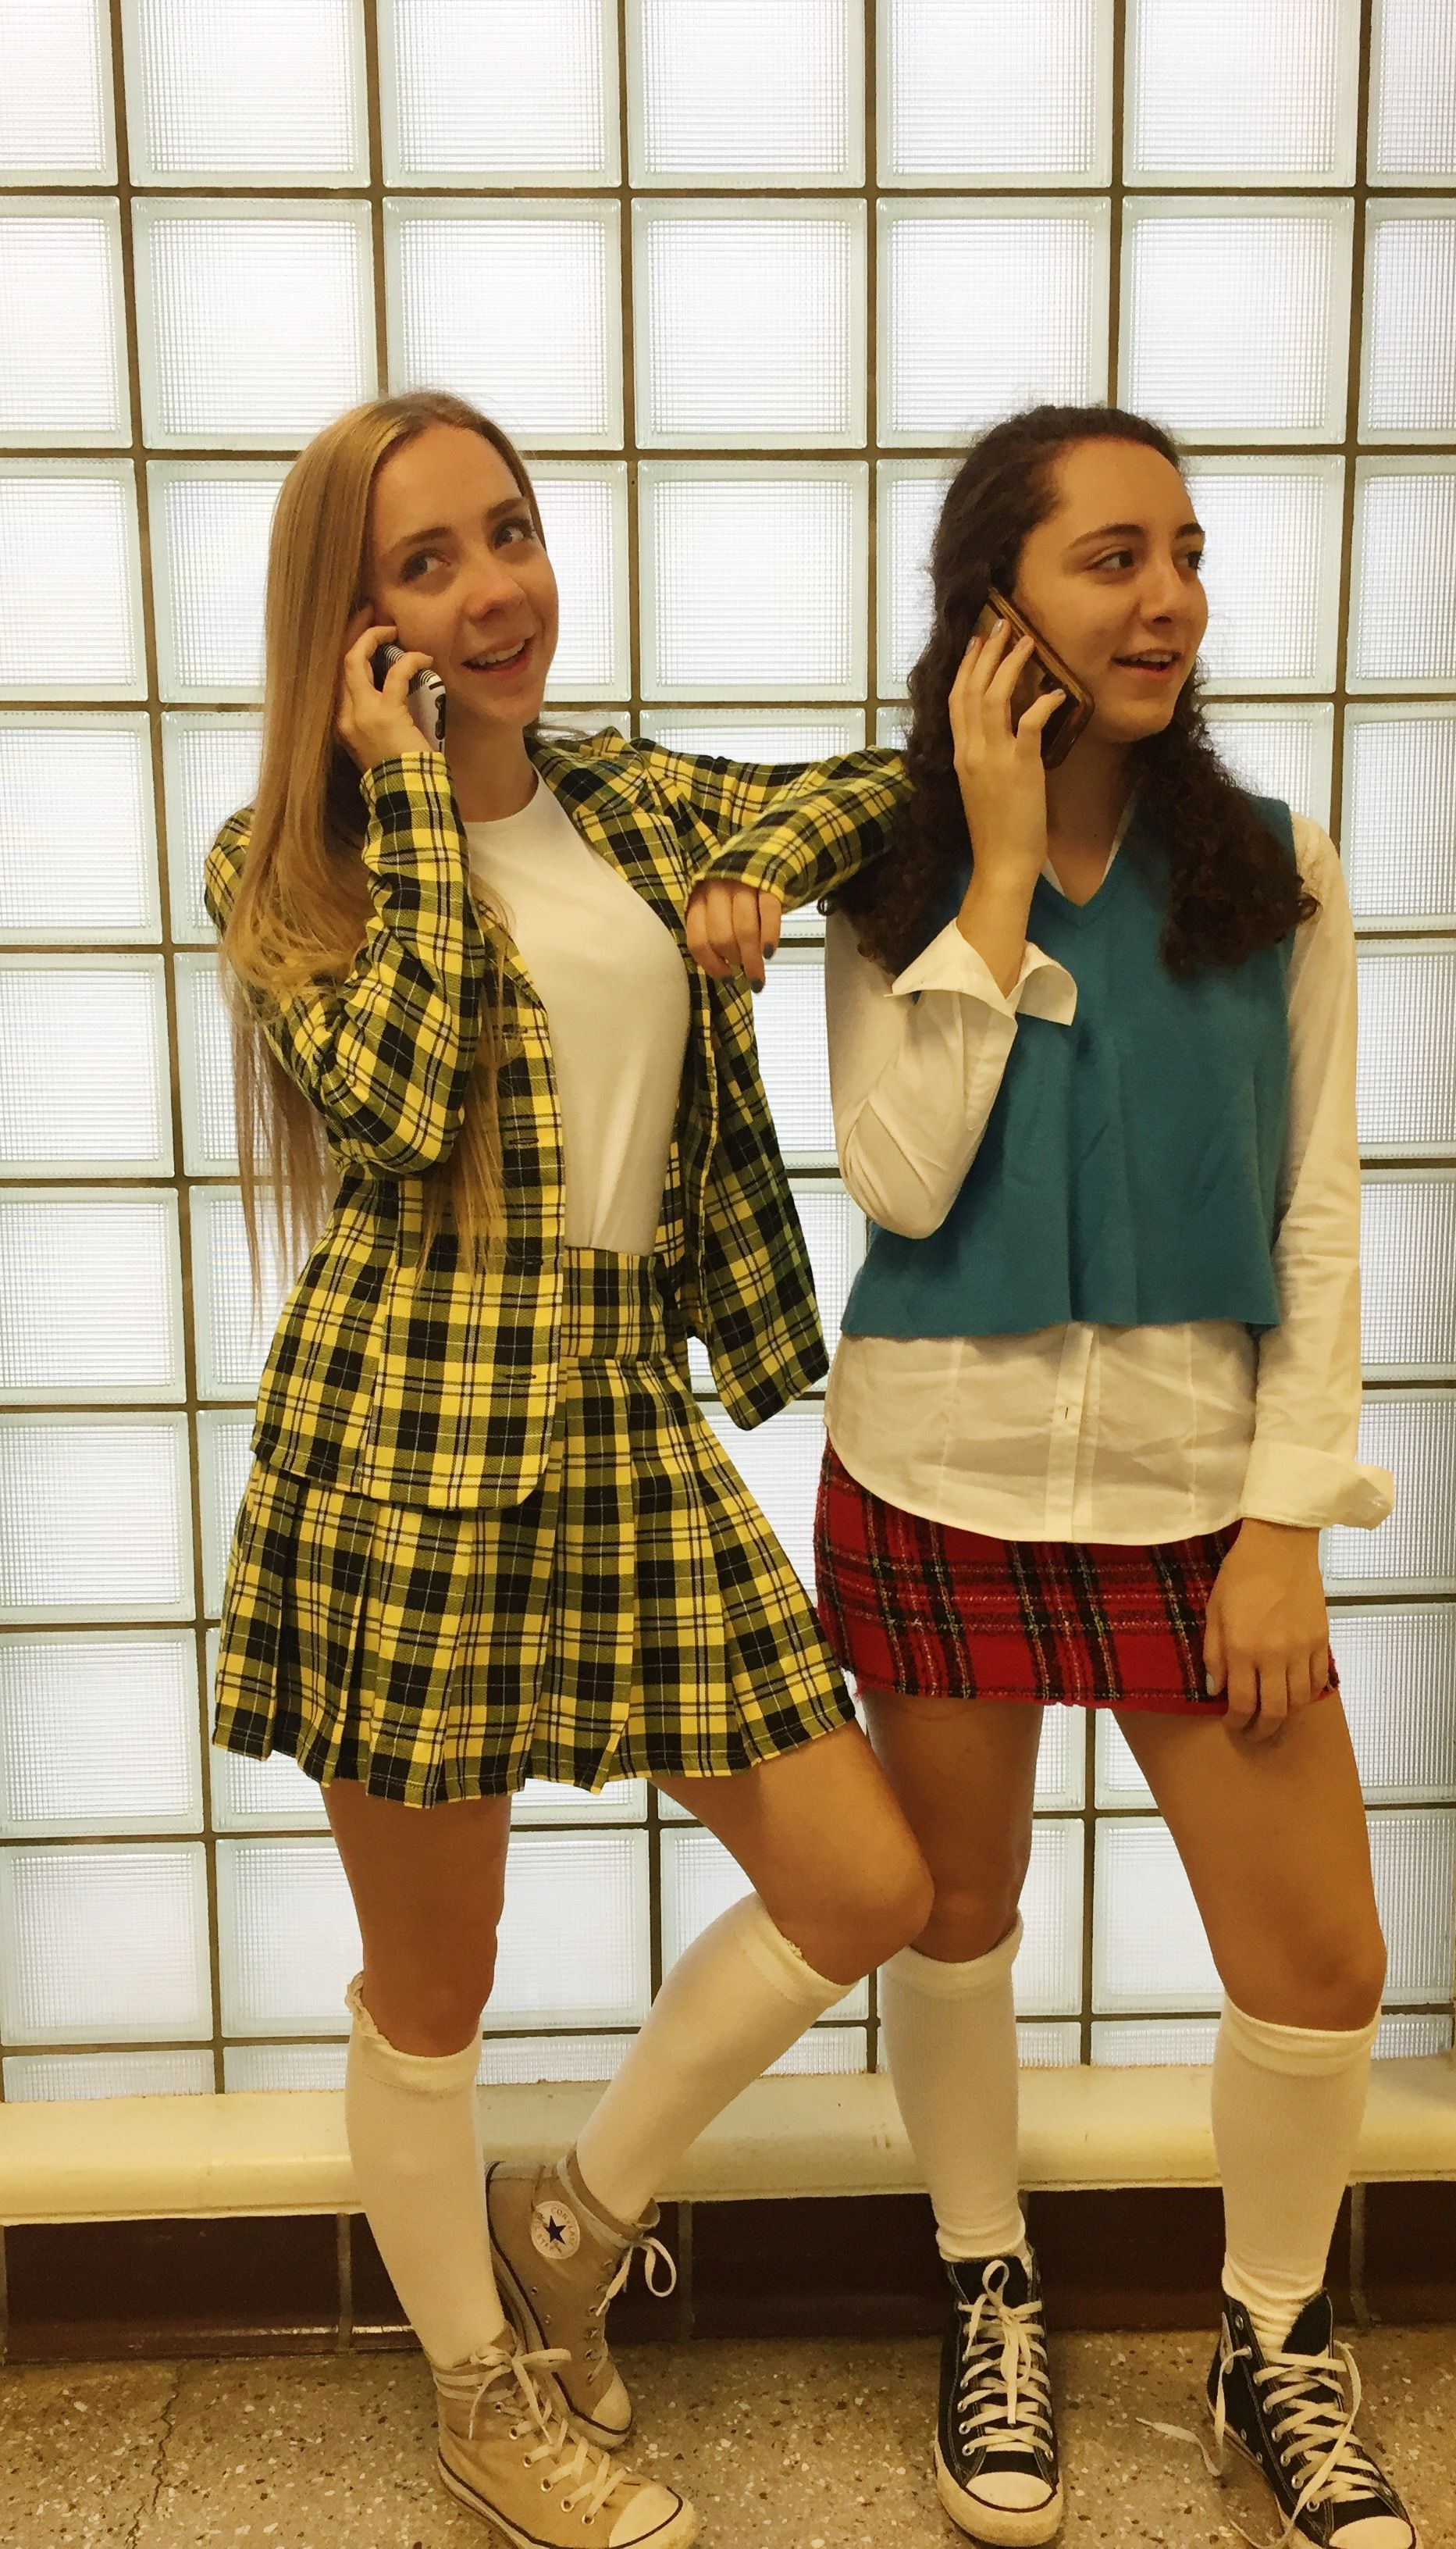 Clueless Costume  Spirit week: Character day #characterdayspiritweek Clueless Costume  Spirit week: Character day #characterdayspiritweek